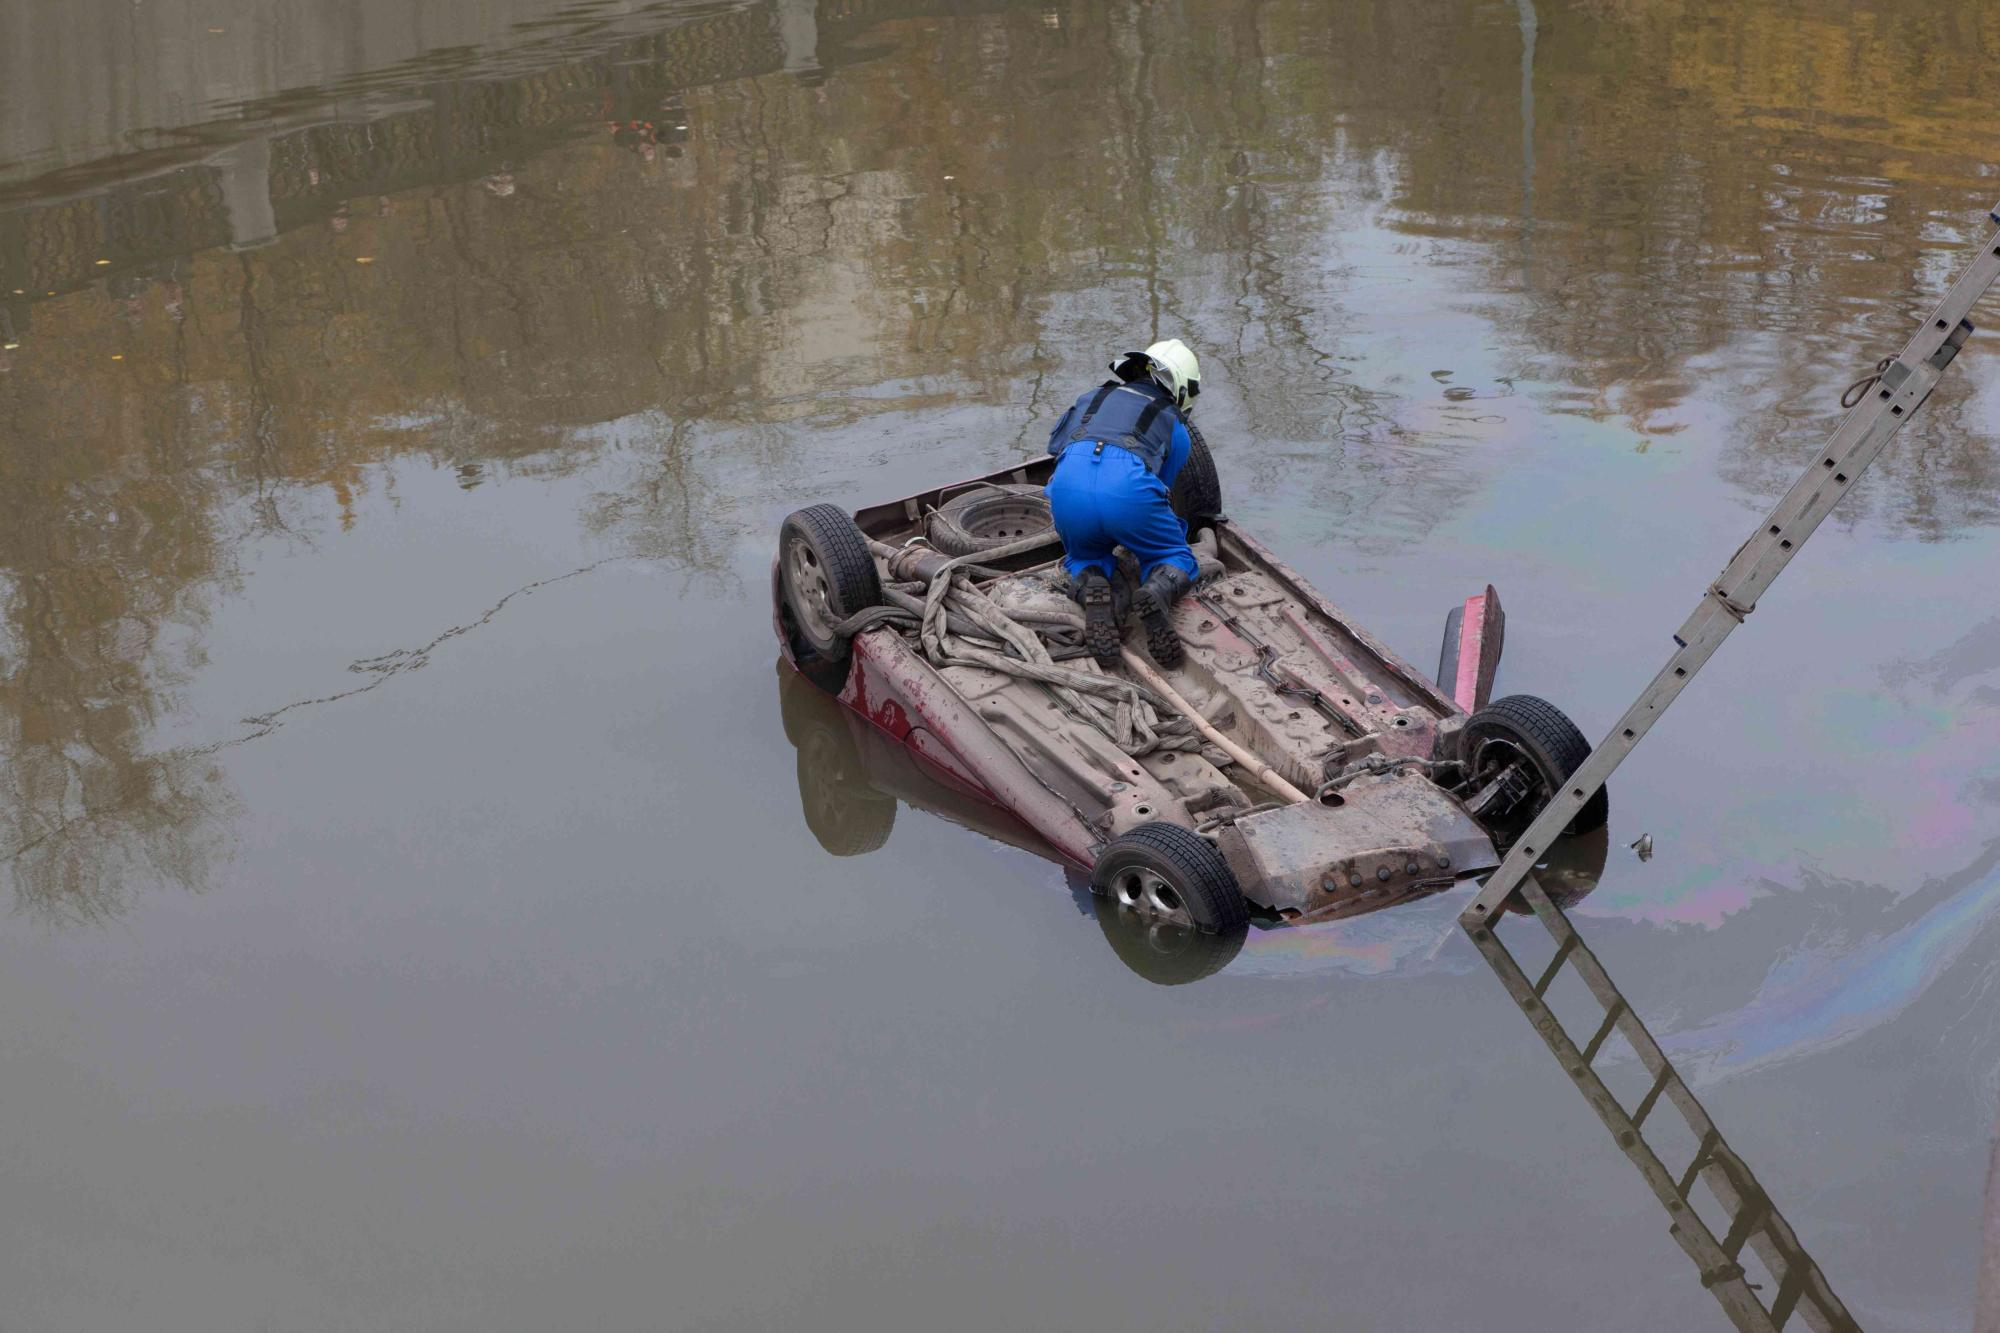 car fell into water and capsized. Rescuer attaches the rope.